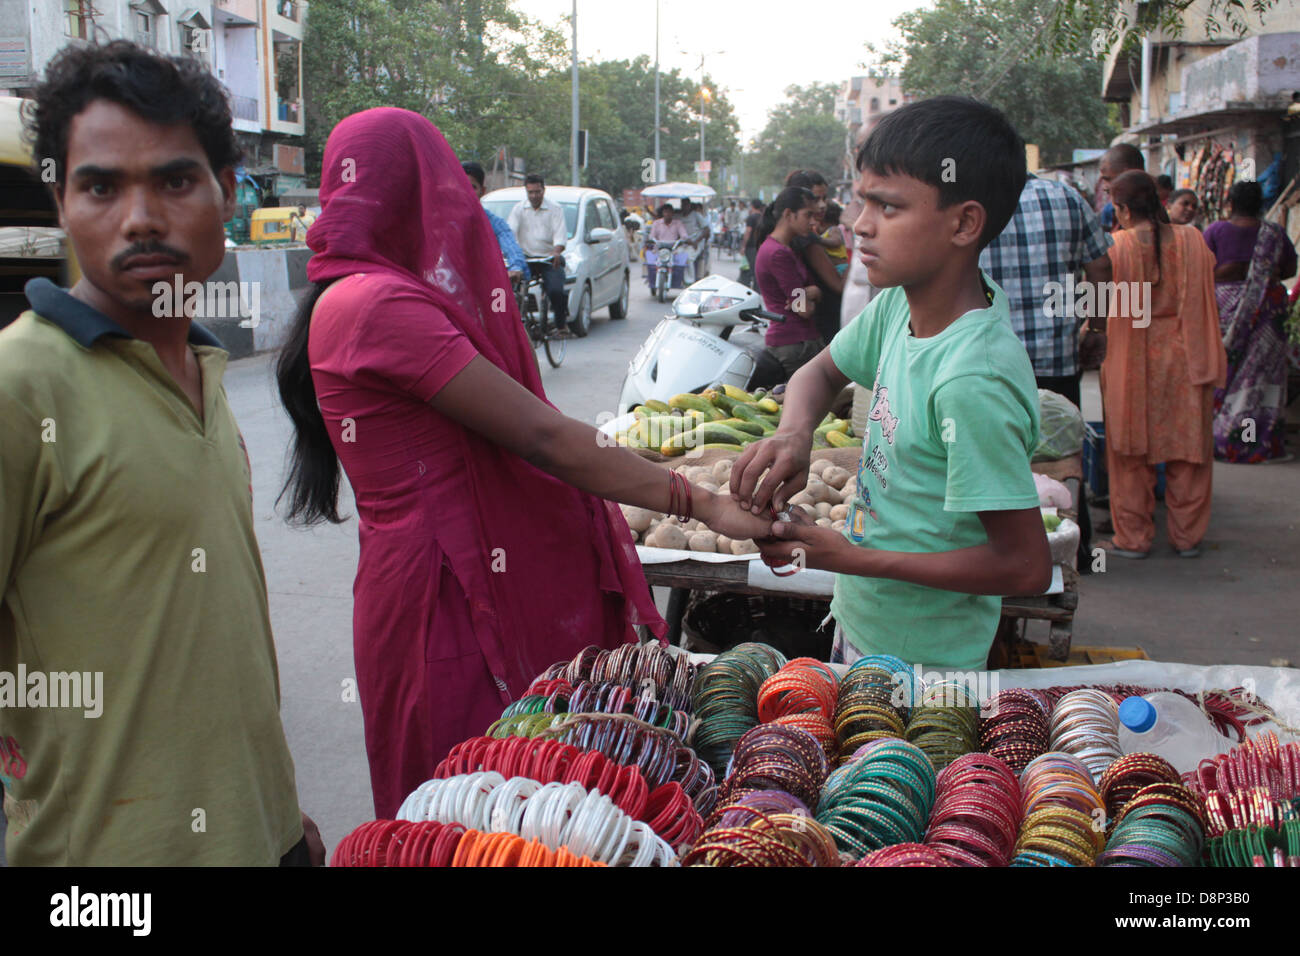 A pregnant woman tries on bangles with help from a bangle-seller in Old Delhi, India. - Stock Image